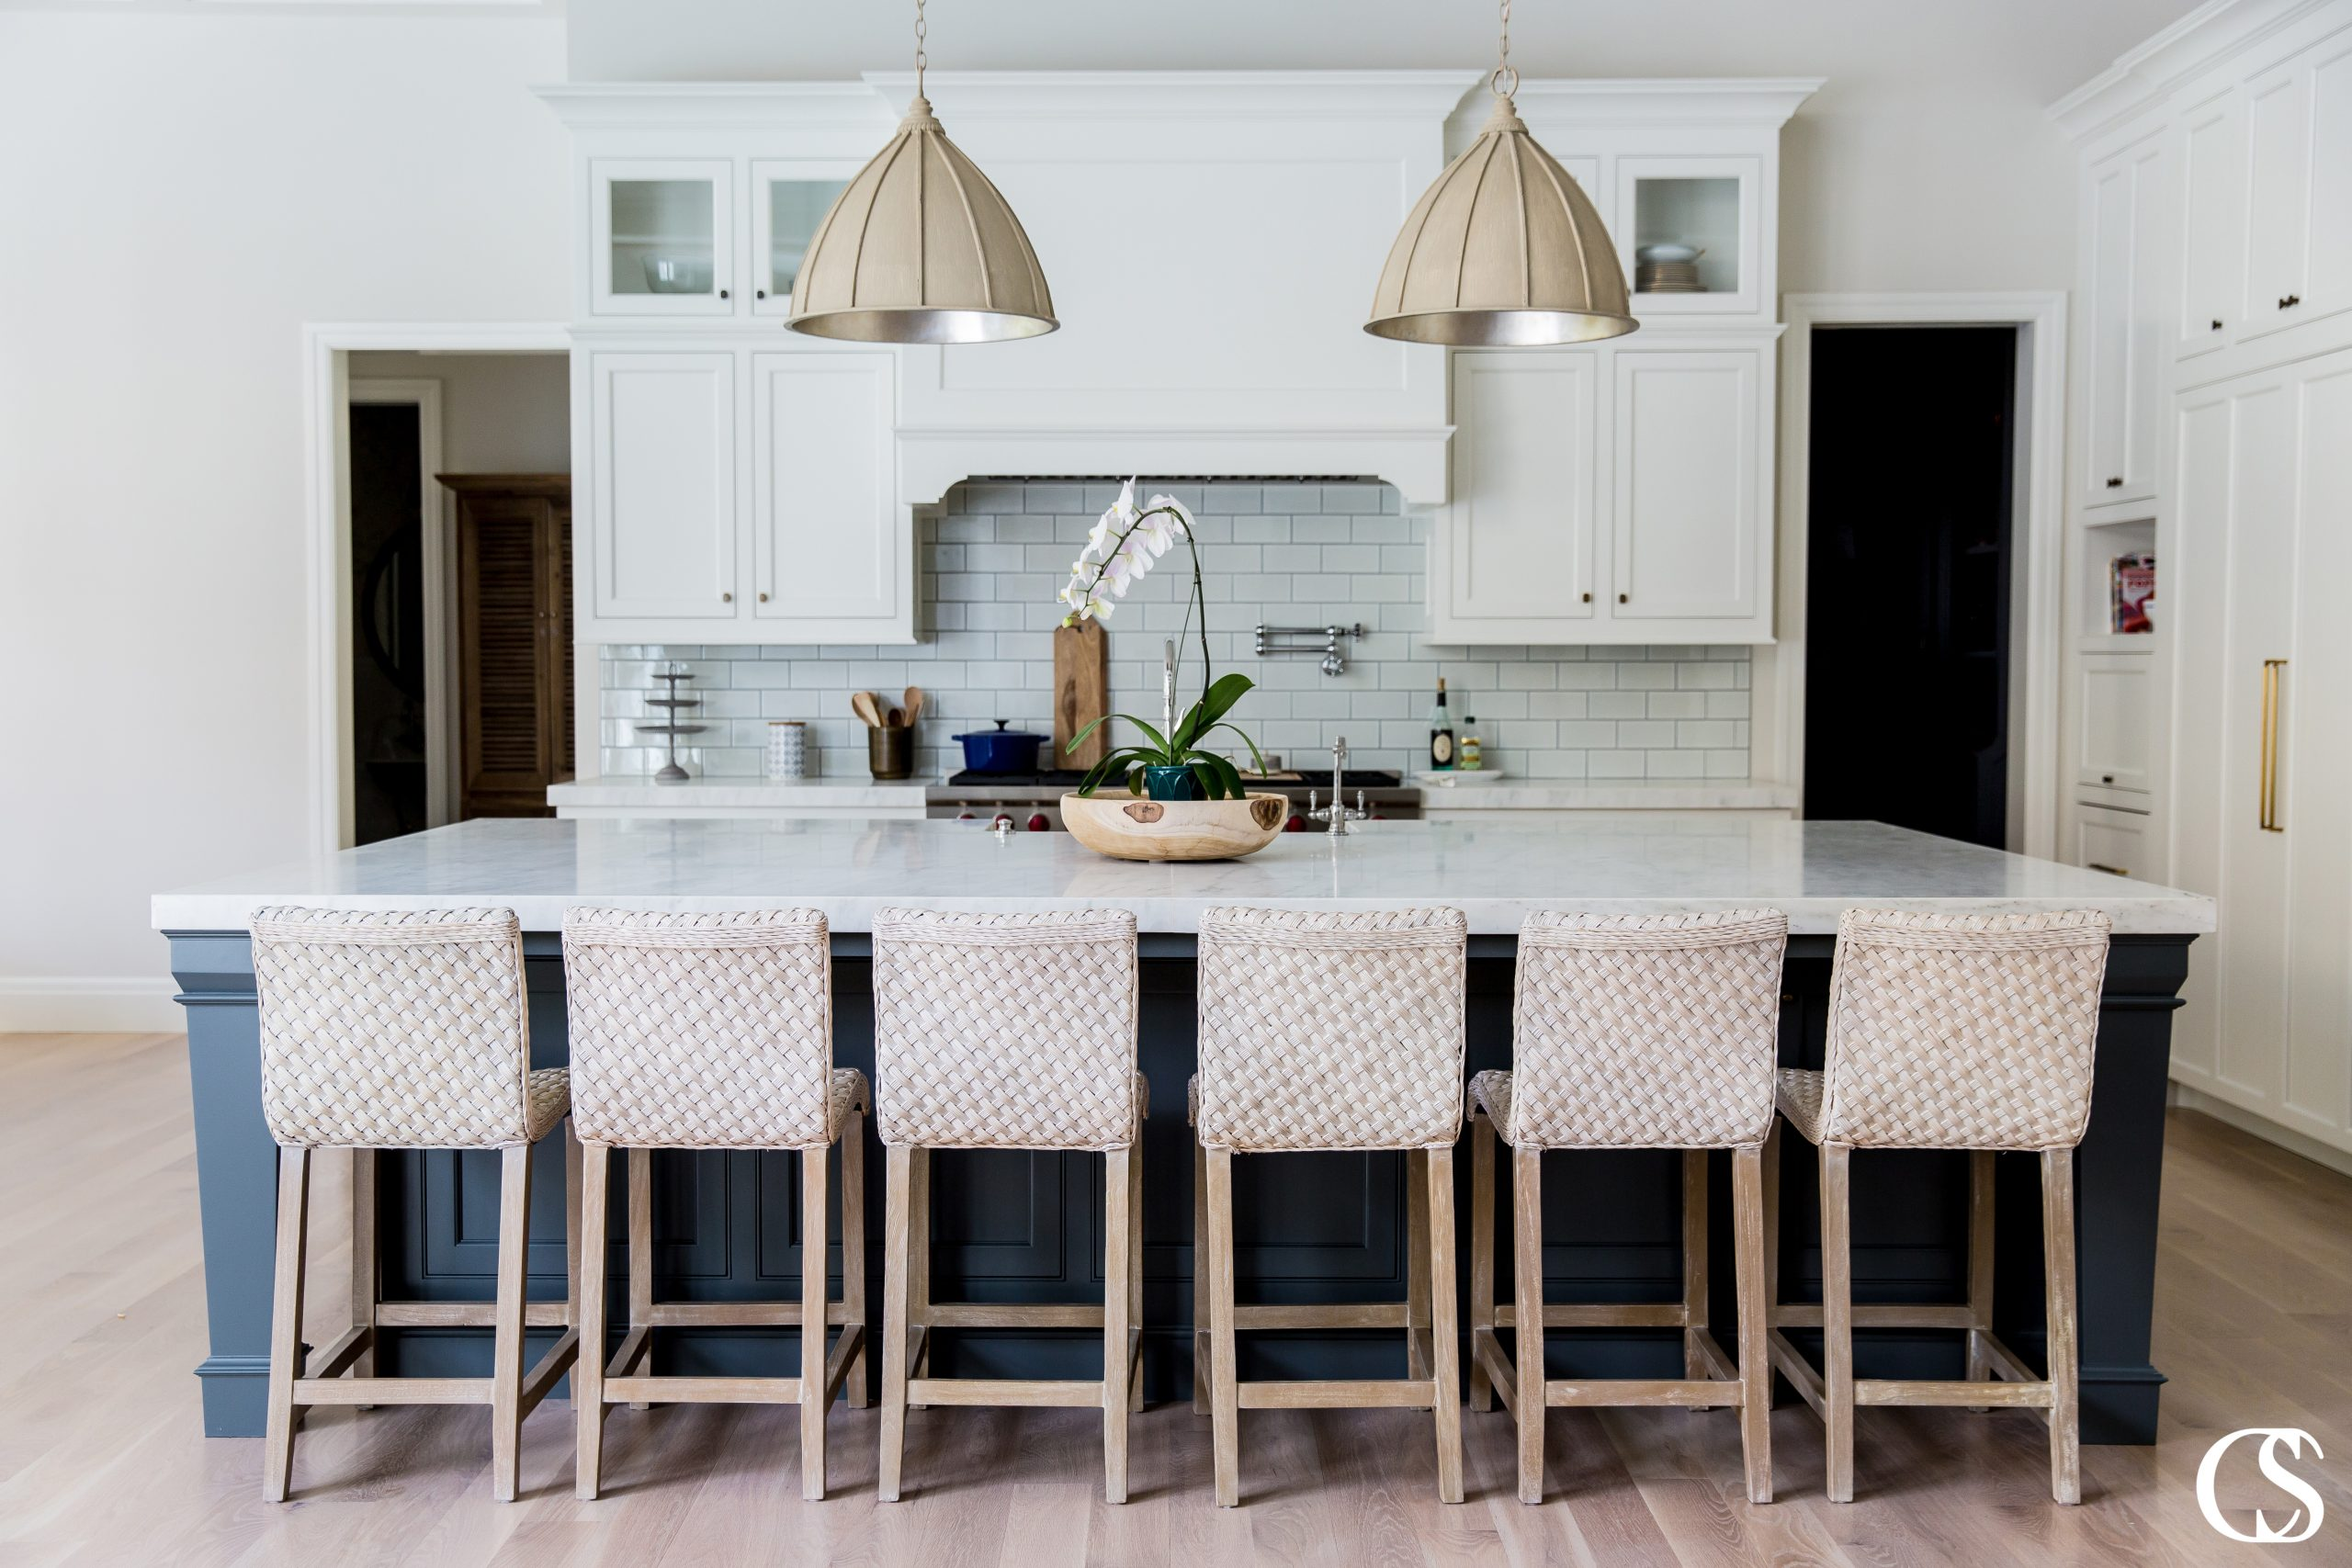 Trendy custom kitchen designs come in every shape, size, and color imaginable. This sweet white kitchen may not be huge but every detail of the inset cabinetry packs a punch.